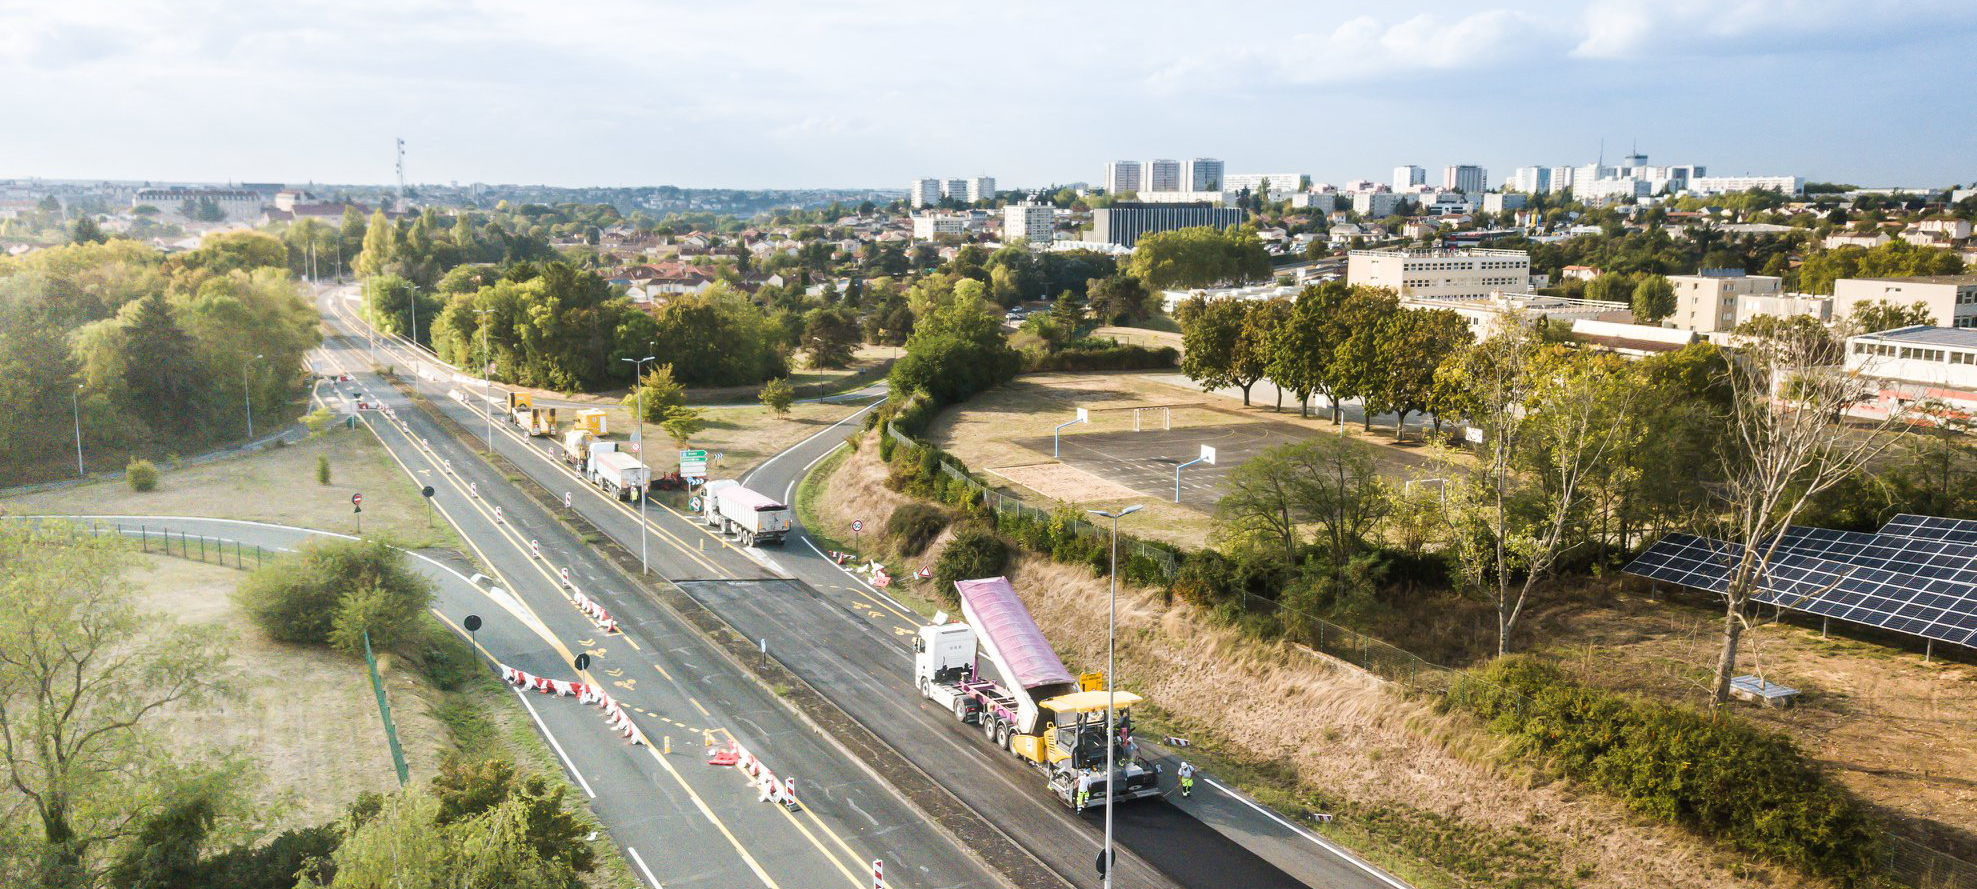 route poitiers drone